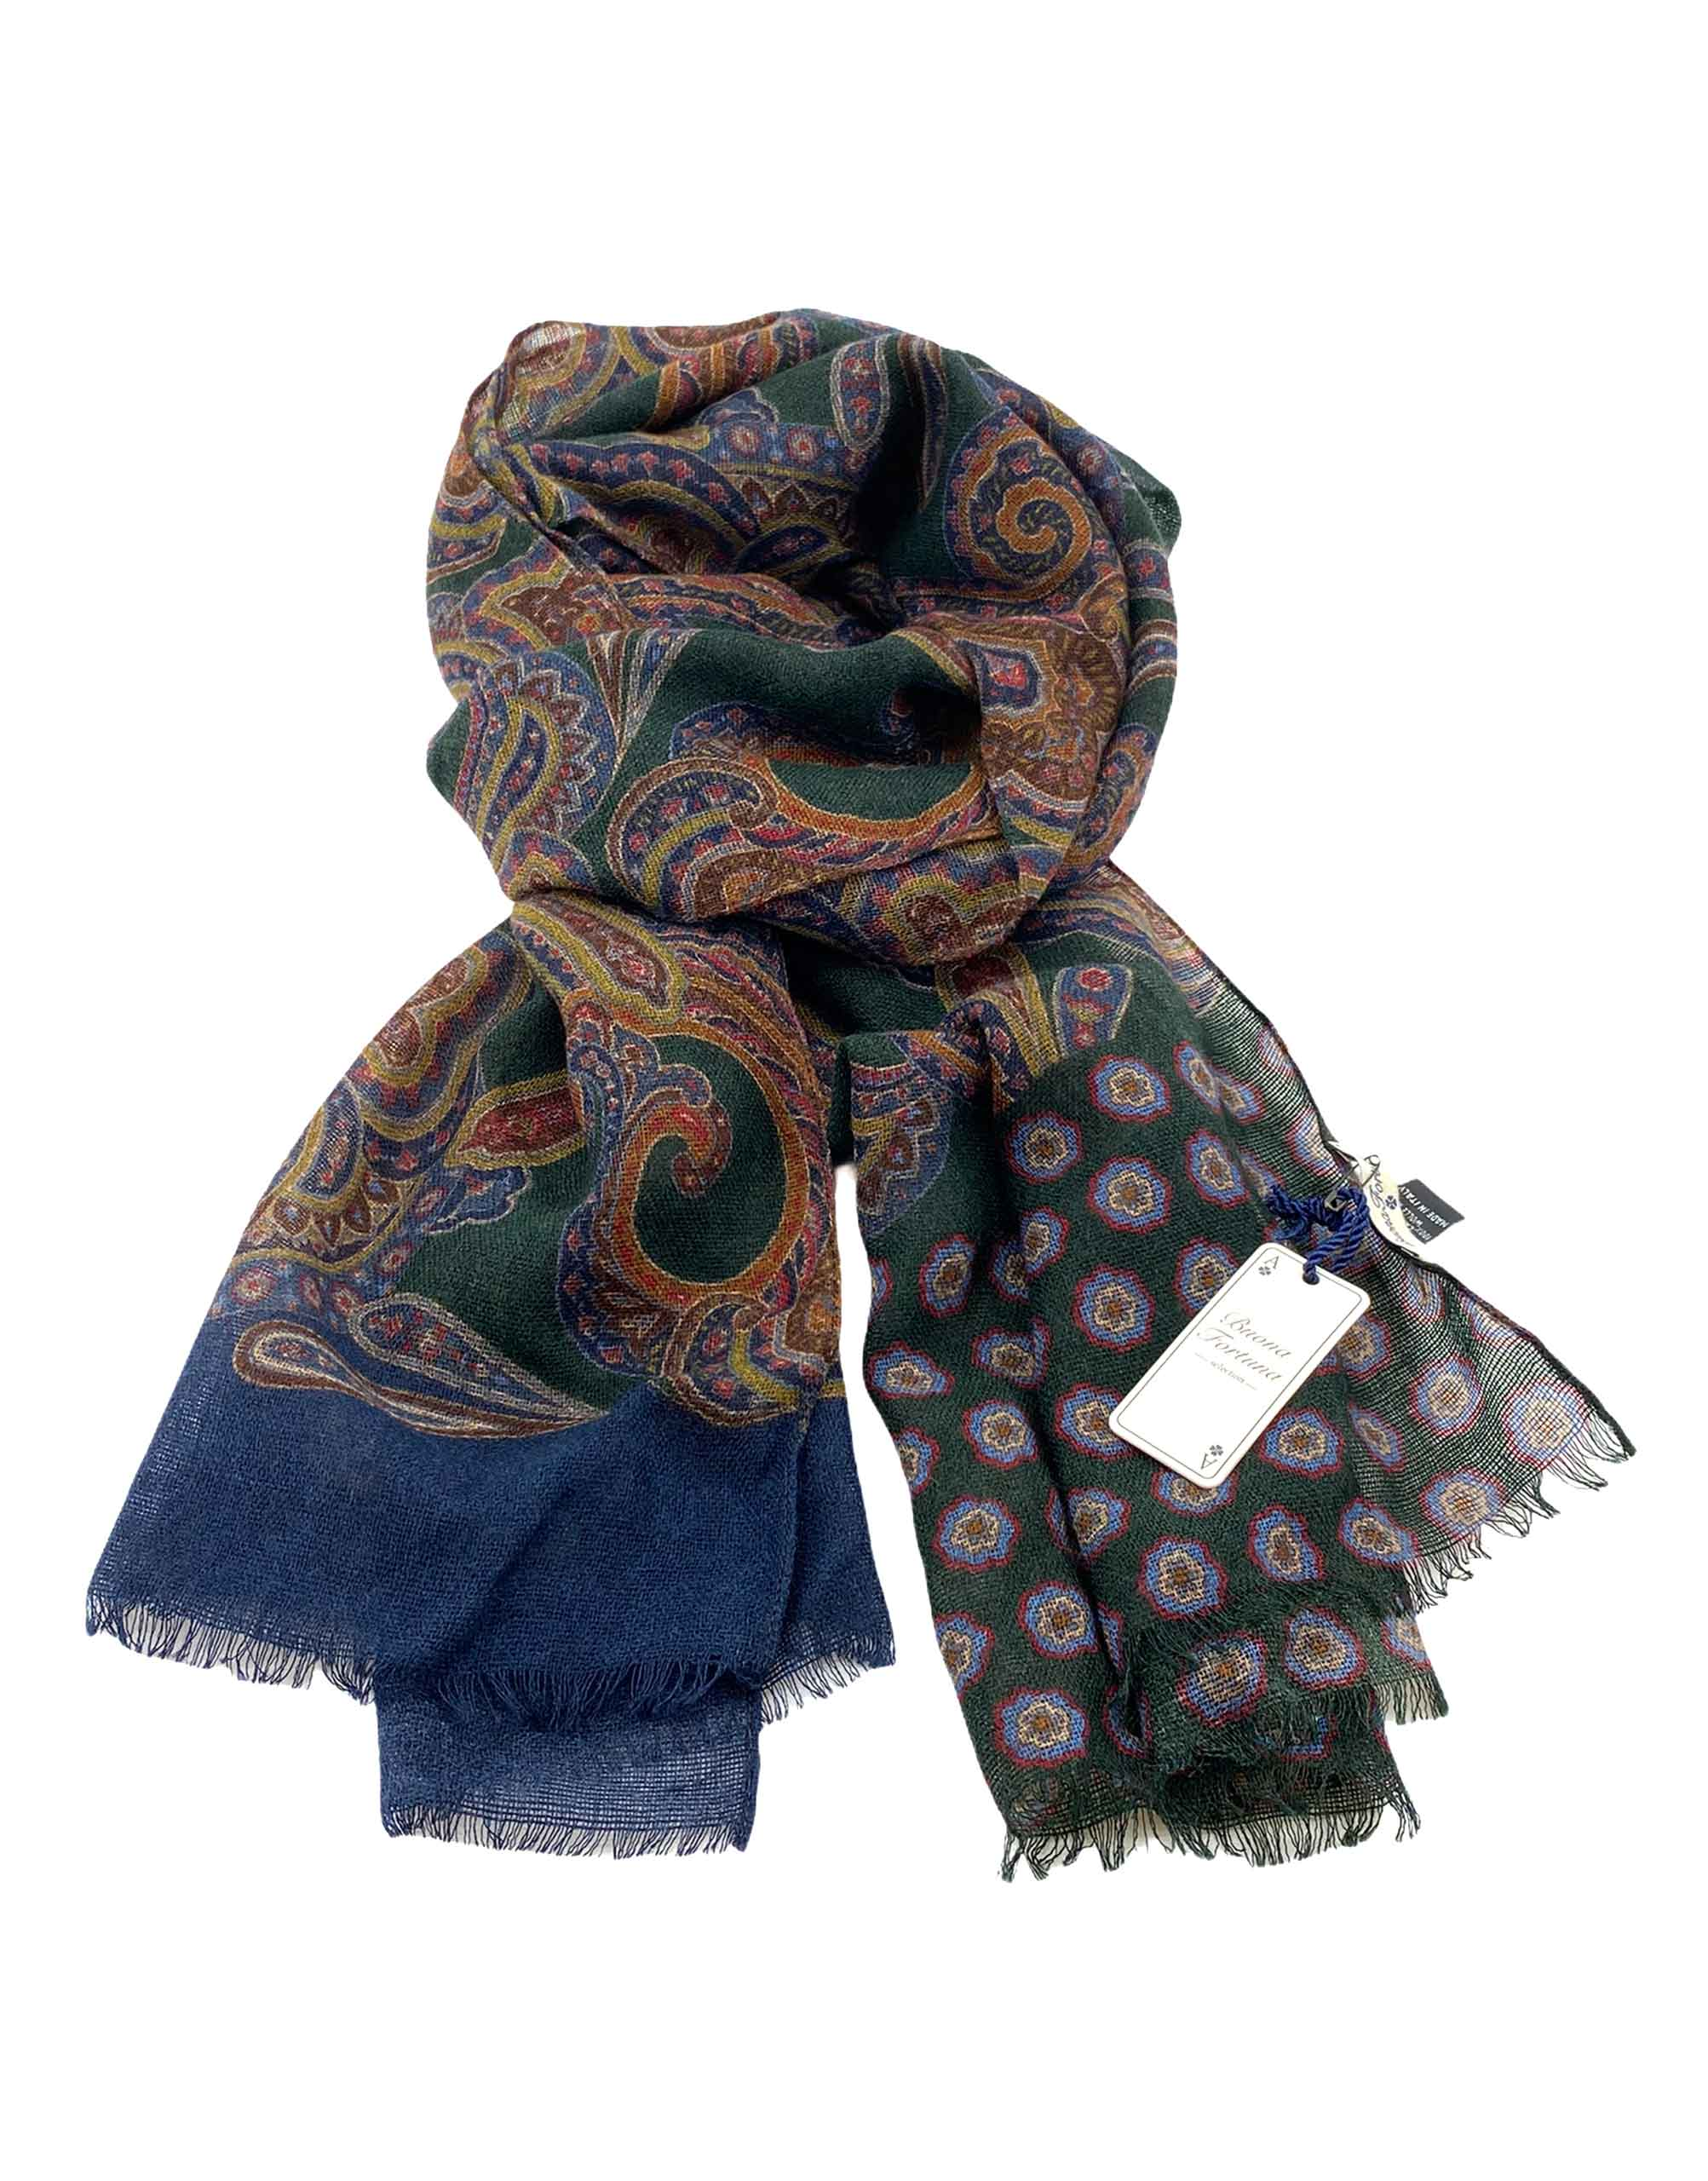 pashmina buona fortuna exclusivas comprar online moda italiana foulards shop